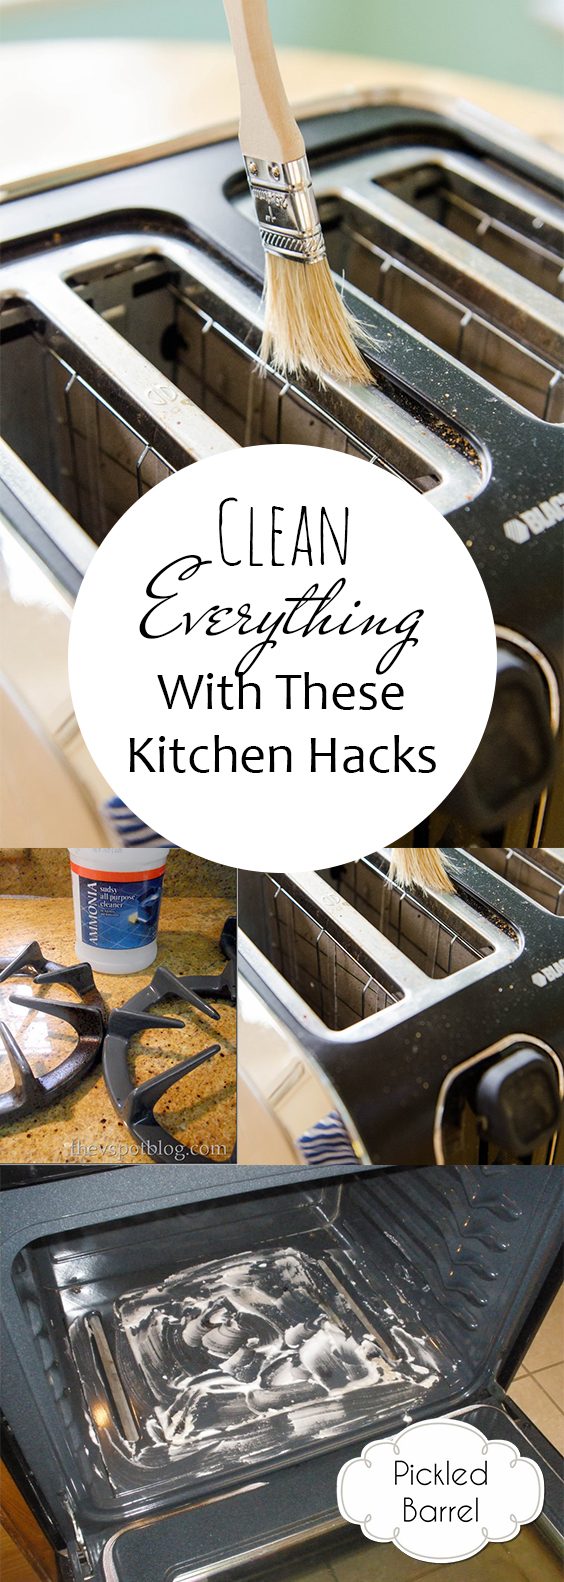 Clean EVERYTHING With These Kitchen Hacks| Kitchen Cleaning, Kitchen Cleaning Hacks, Cleaning Hacks, Clean Home, Clean Home Hacks, Clutter Free Kitchen, Kitchen Cleaning, Popular Pin #Kitchen #Cleaning #CleanKitchen